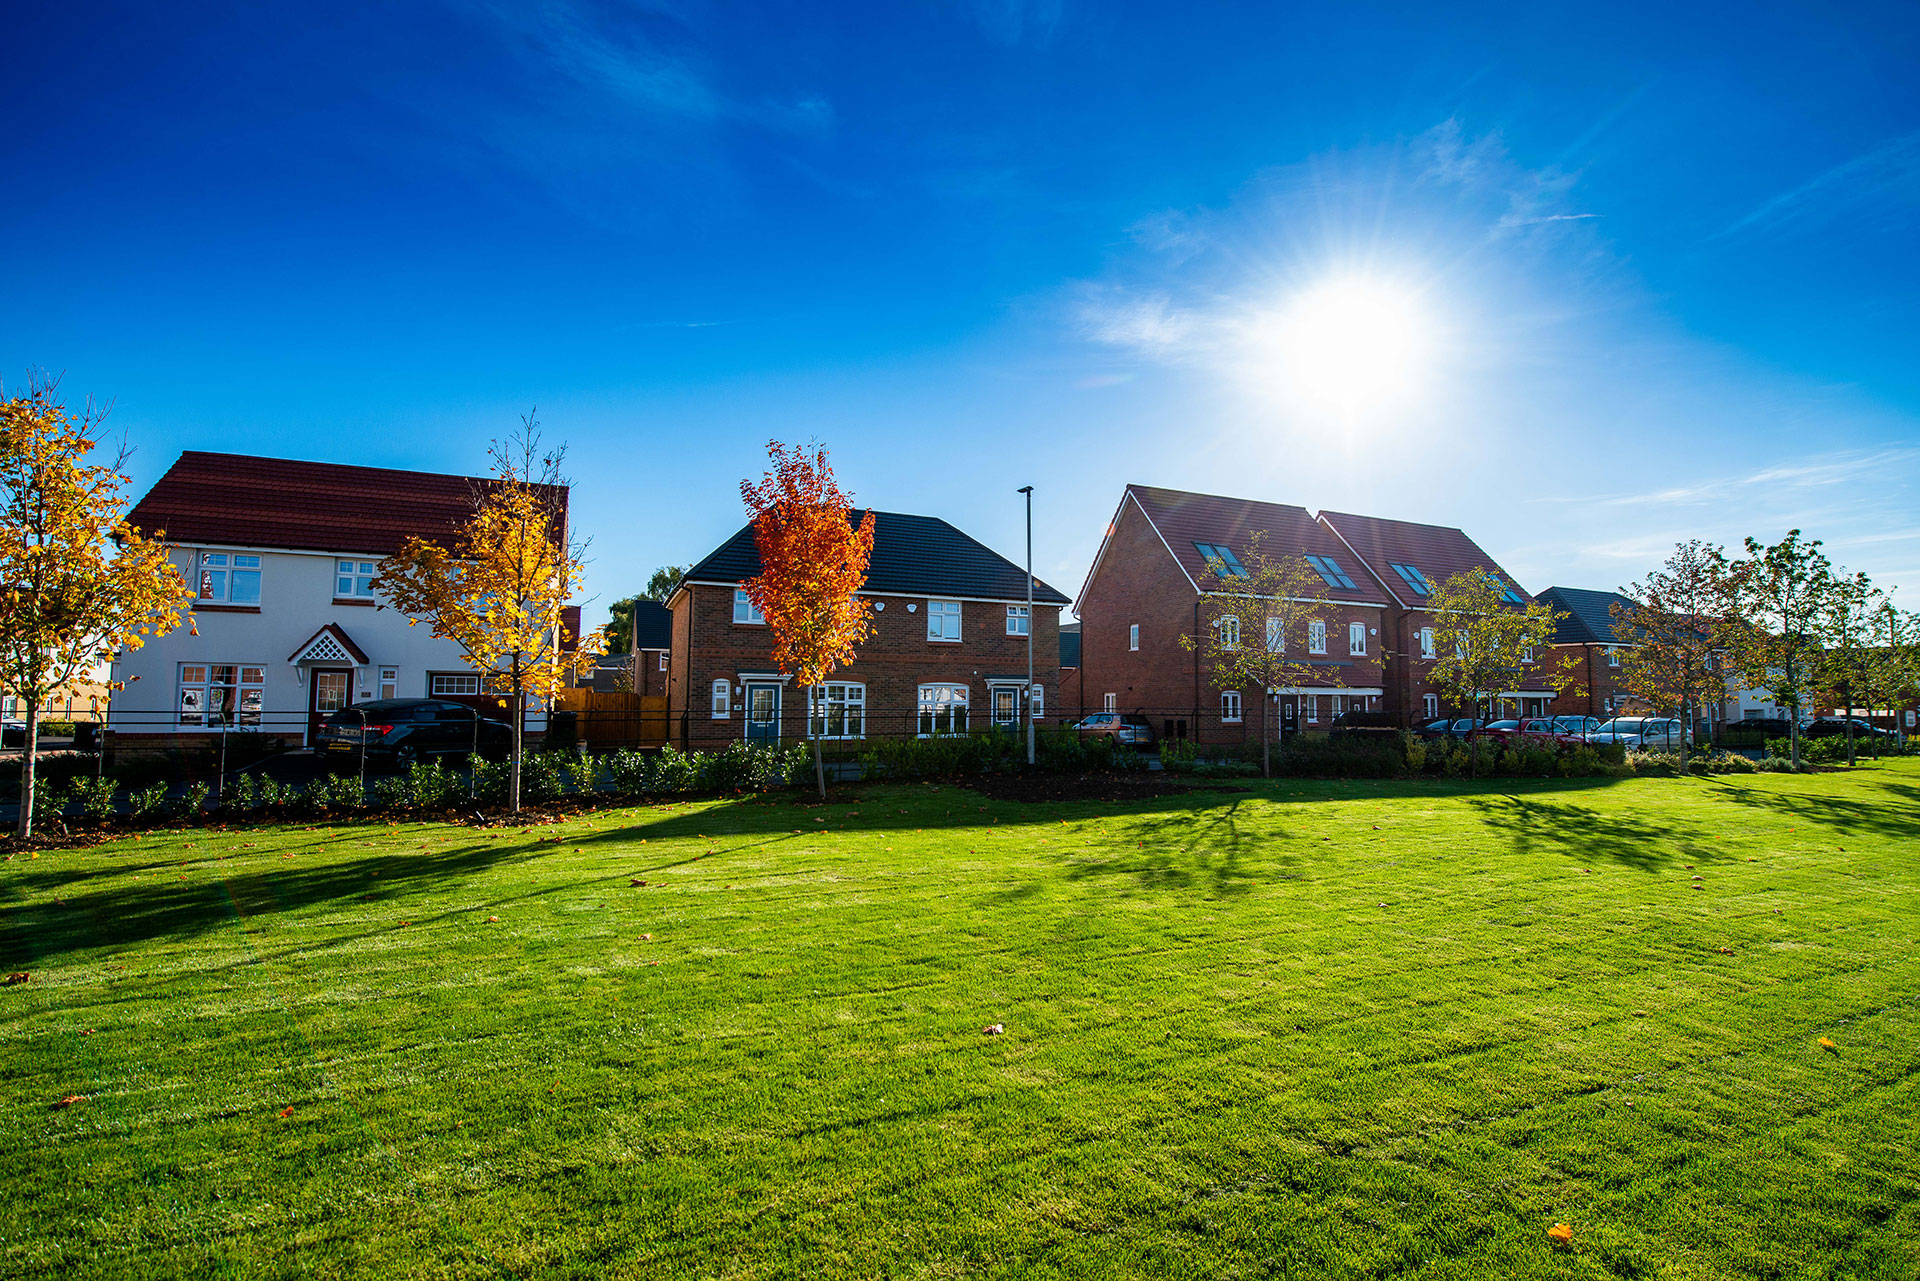 83_-of-tenants-would-pay-more-in-rent-for-a-property-that-better-suited-their-needs